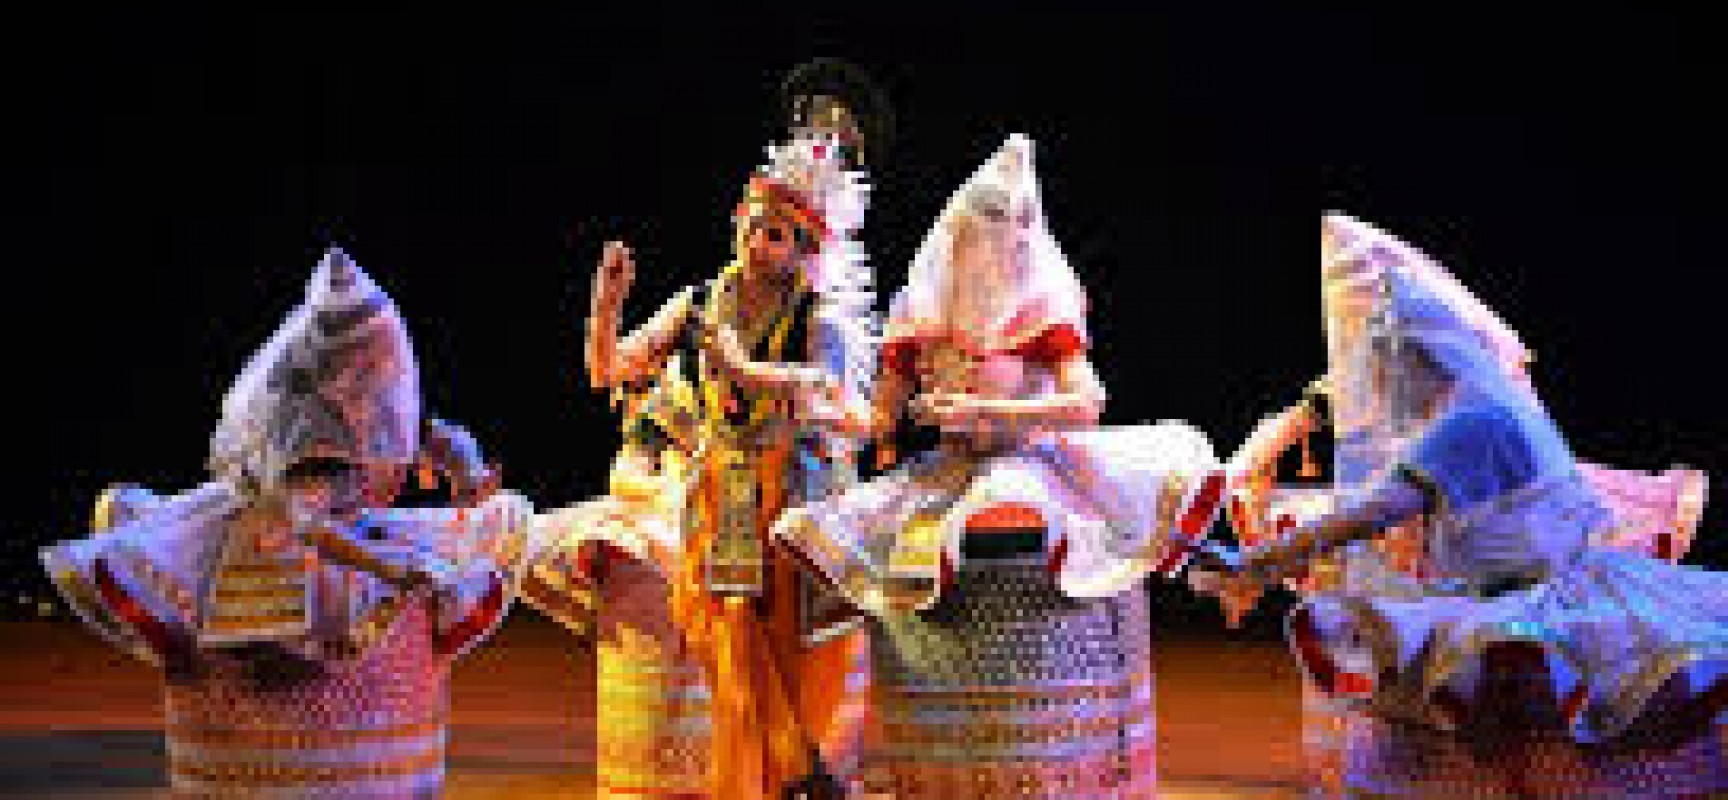 MANIPUR:IN THE LAND OF JEWELS